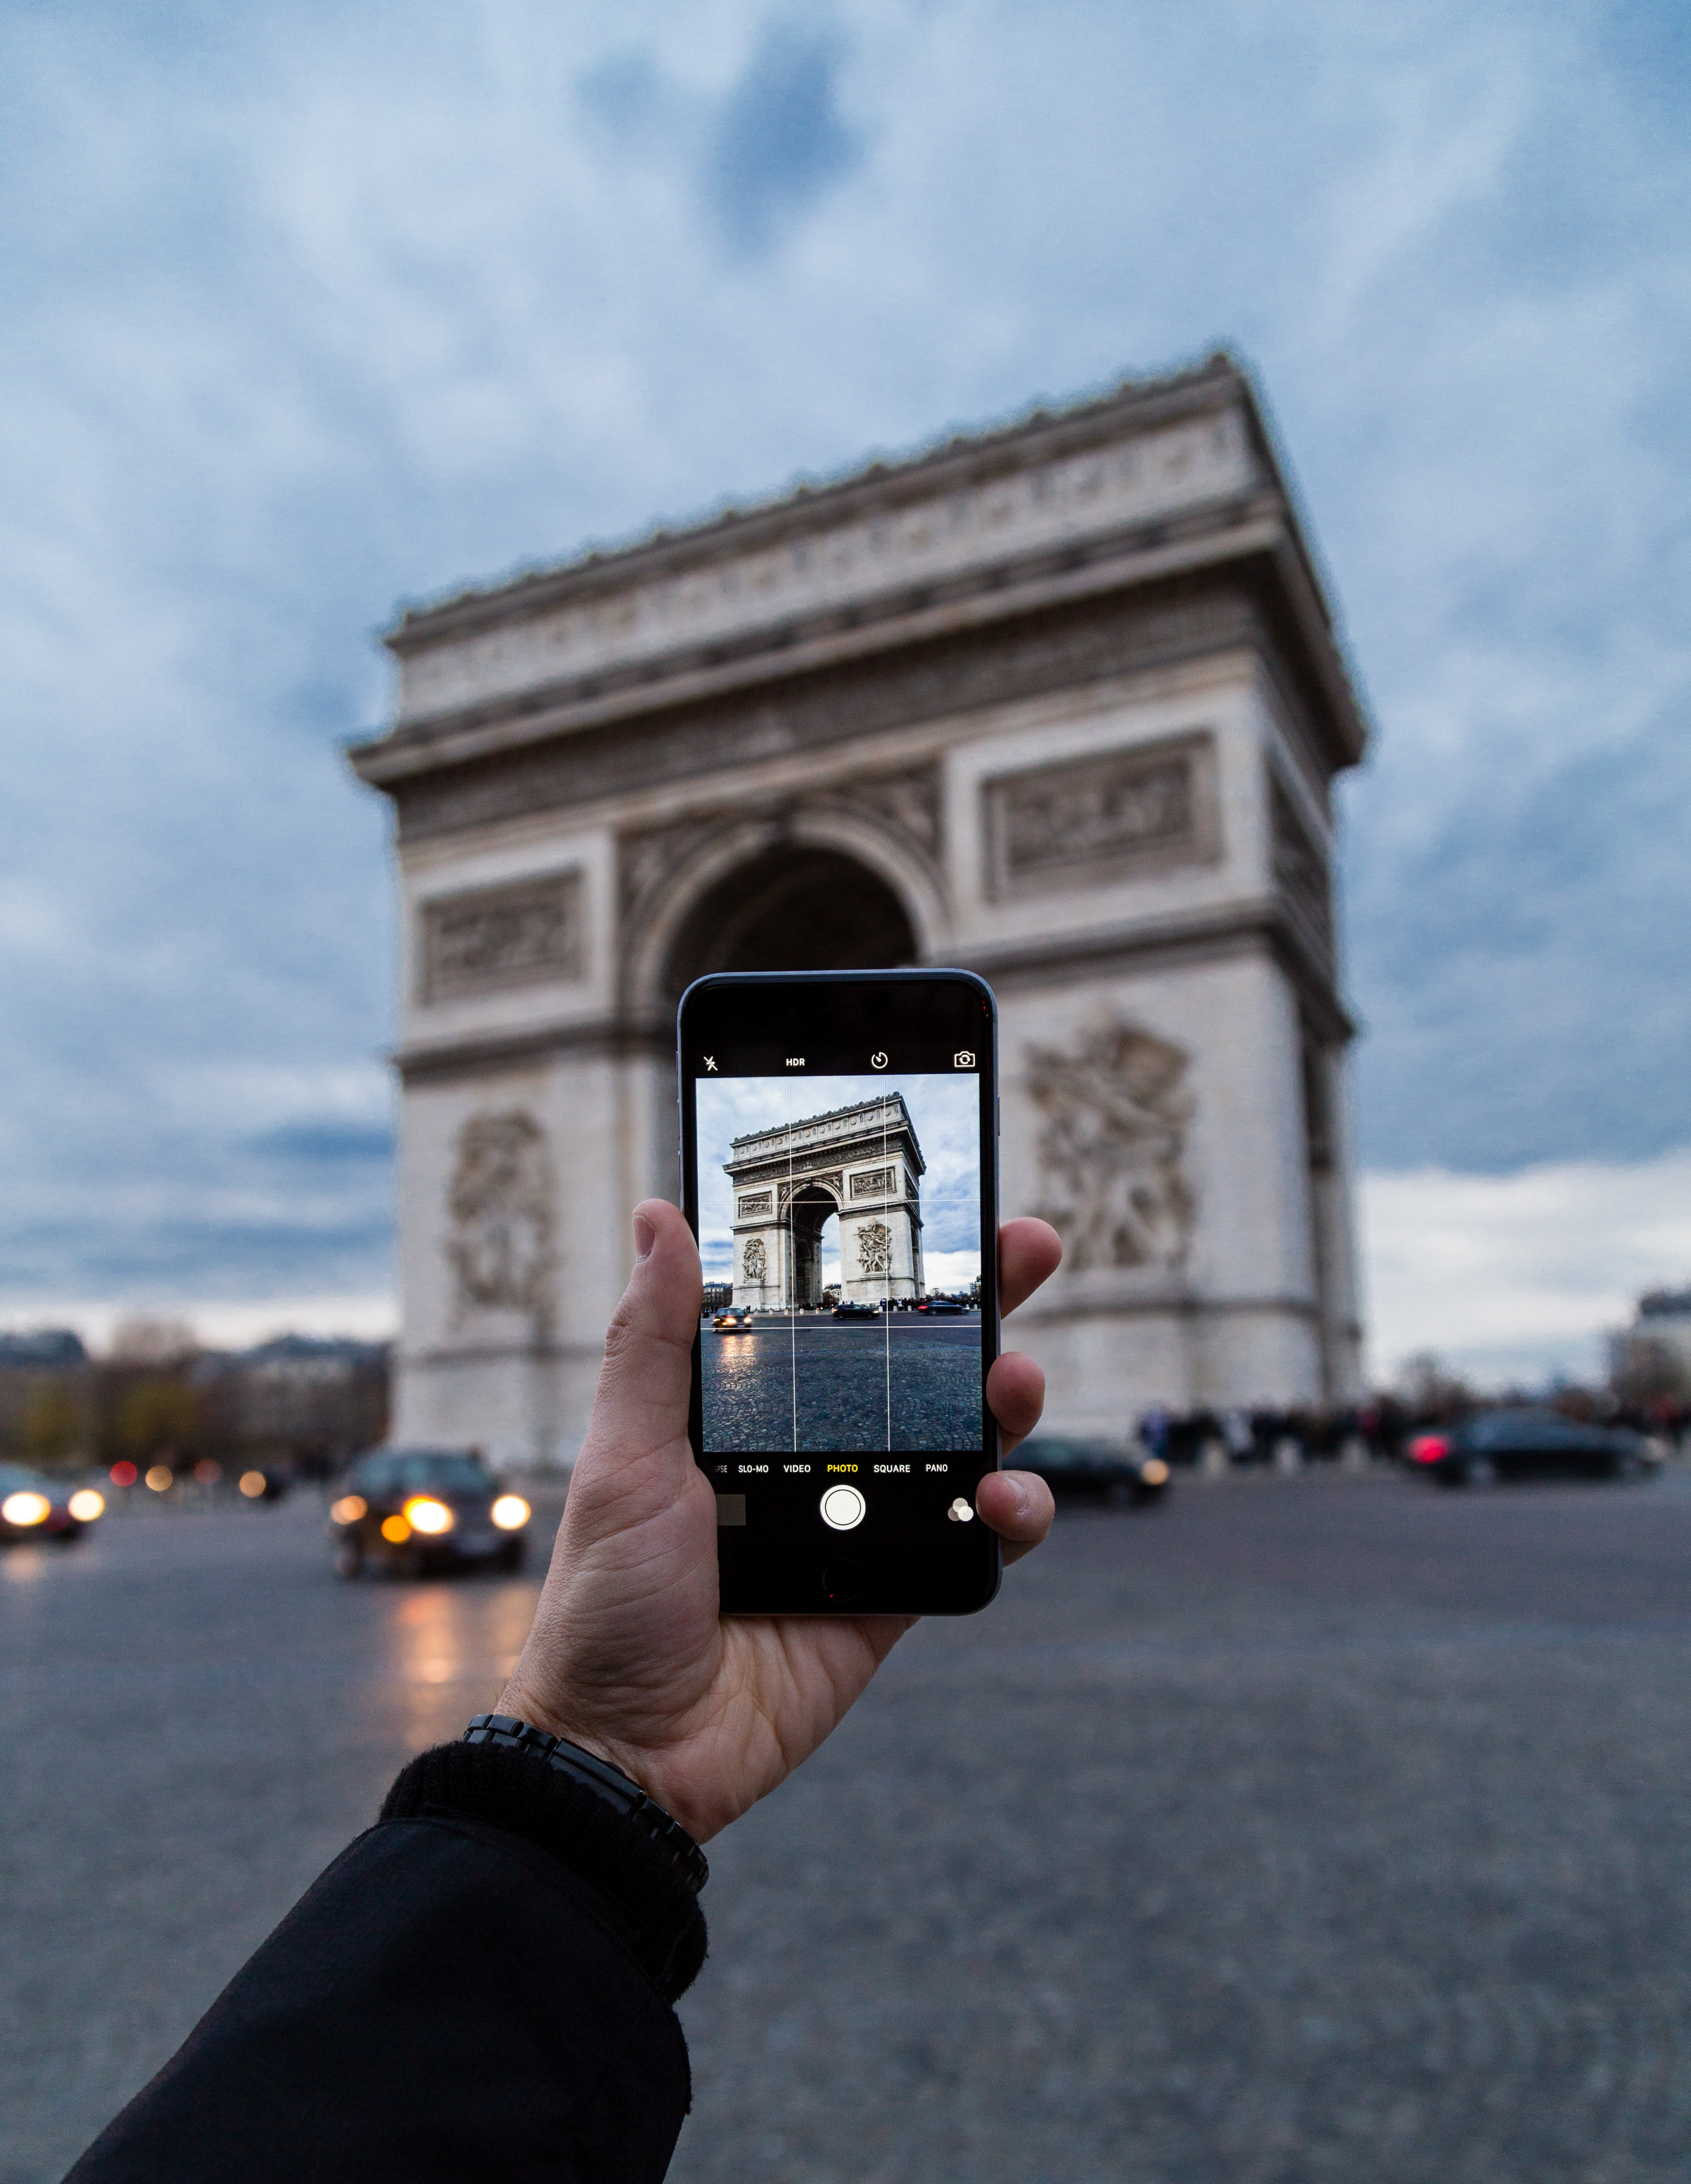 The hand of a man taking a photo of the Arc de Triomphe with his iPhone mobile smartphone while in traffic.